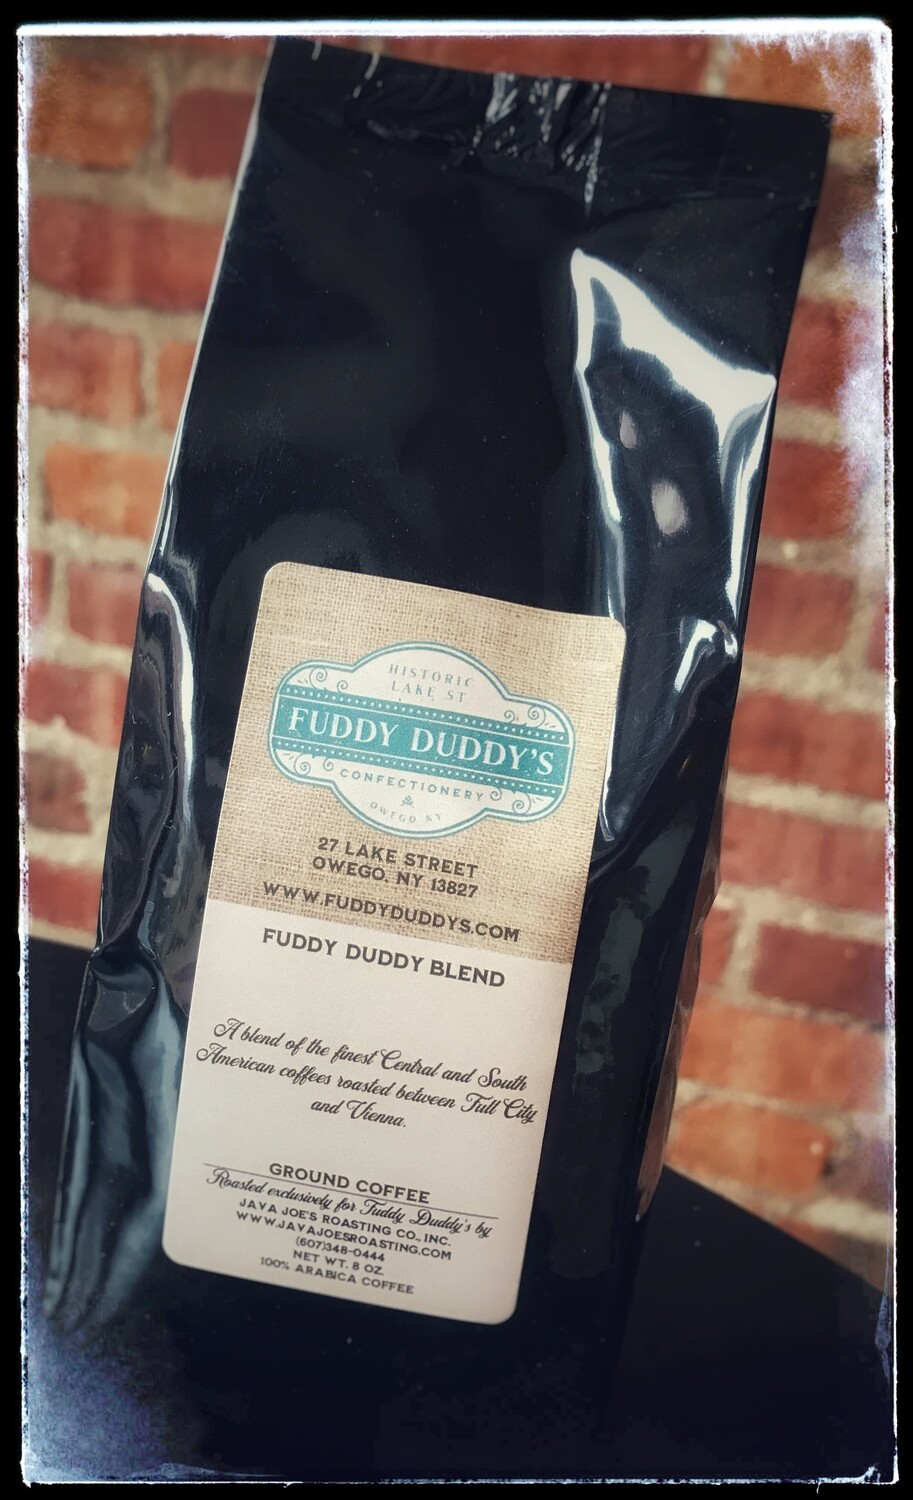 "Fuddy Duddy's ""Fuddy Duddy"" Ground Coffee Blend"